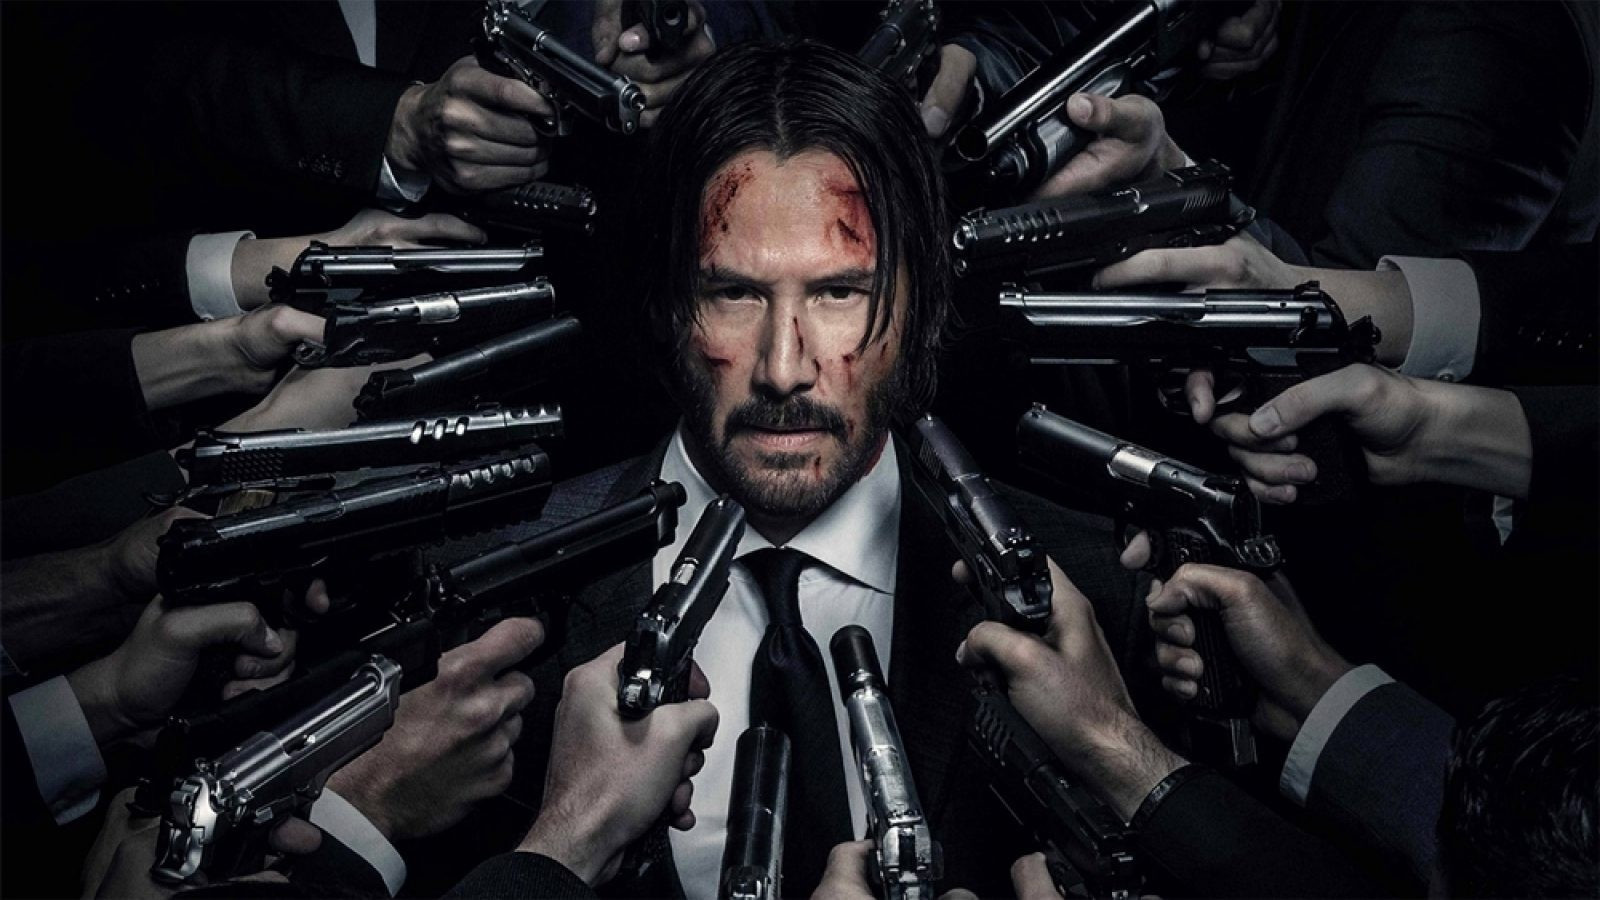 John Wick 3 Passes Avengers: Endgame With Opening Weekend